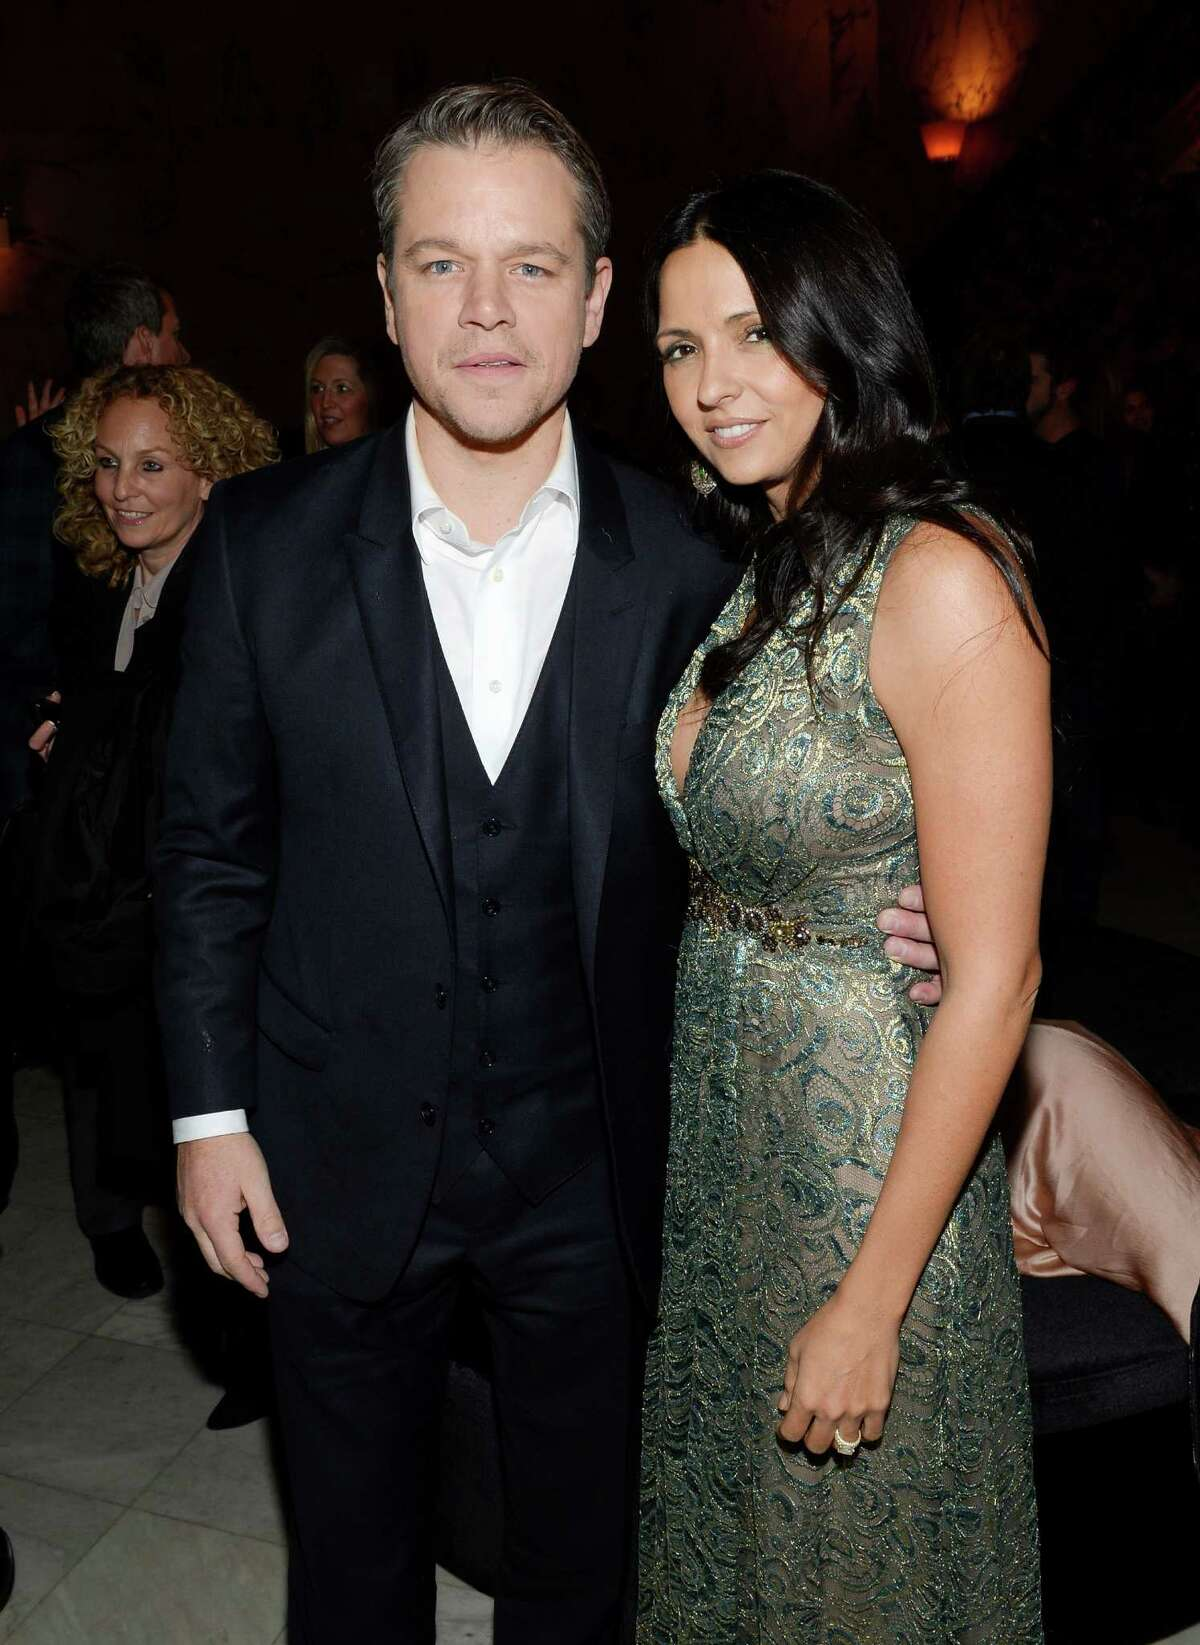 """Actor Matt Damon and wife Luciana Barroso attend """"The Monuments Men"""" premiere party at the Metropolitan Club on Tuesday, Feb. 4, 2014 in New York. (Photo by Evan Agostini/Invision/AP) ORG XMIT: NYEA132"""